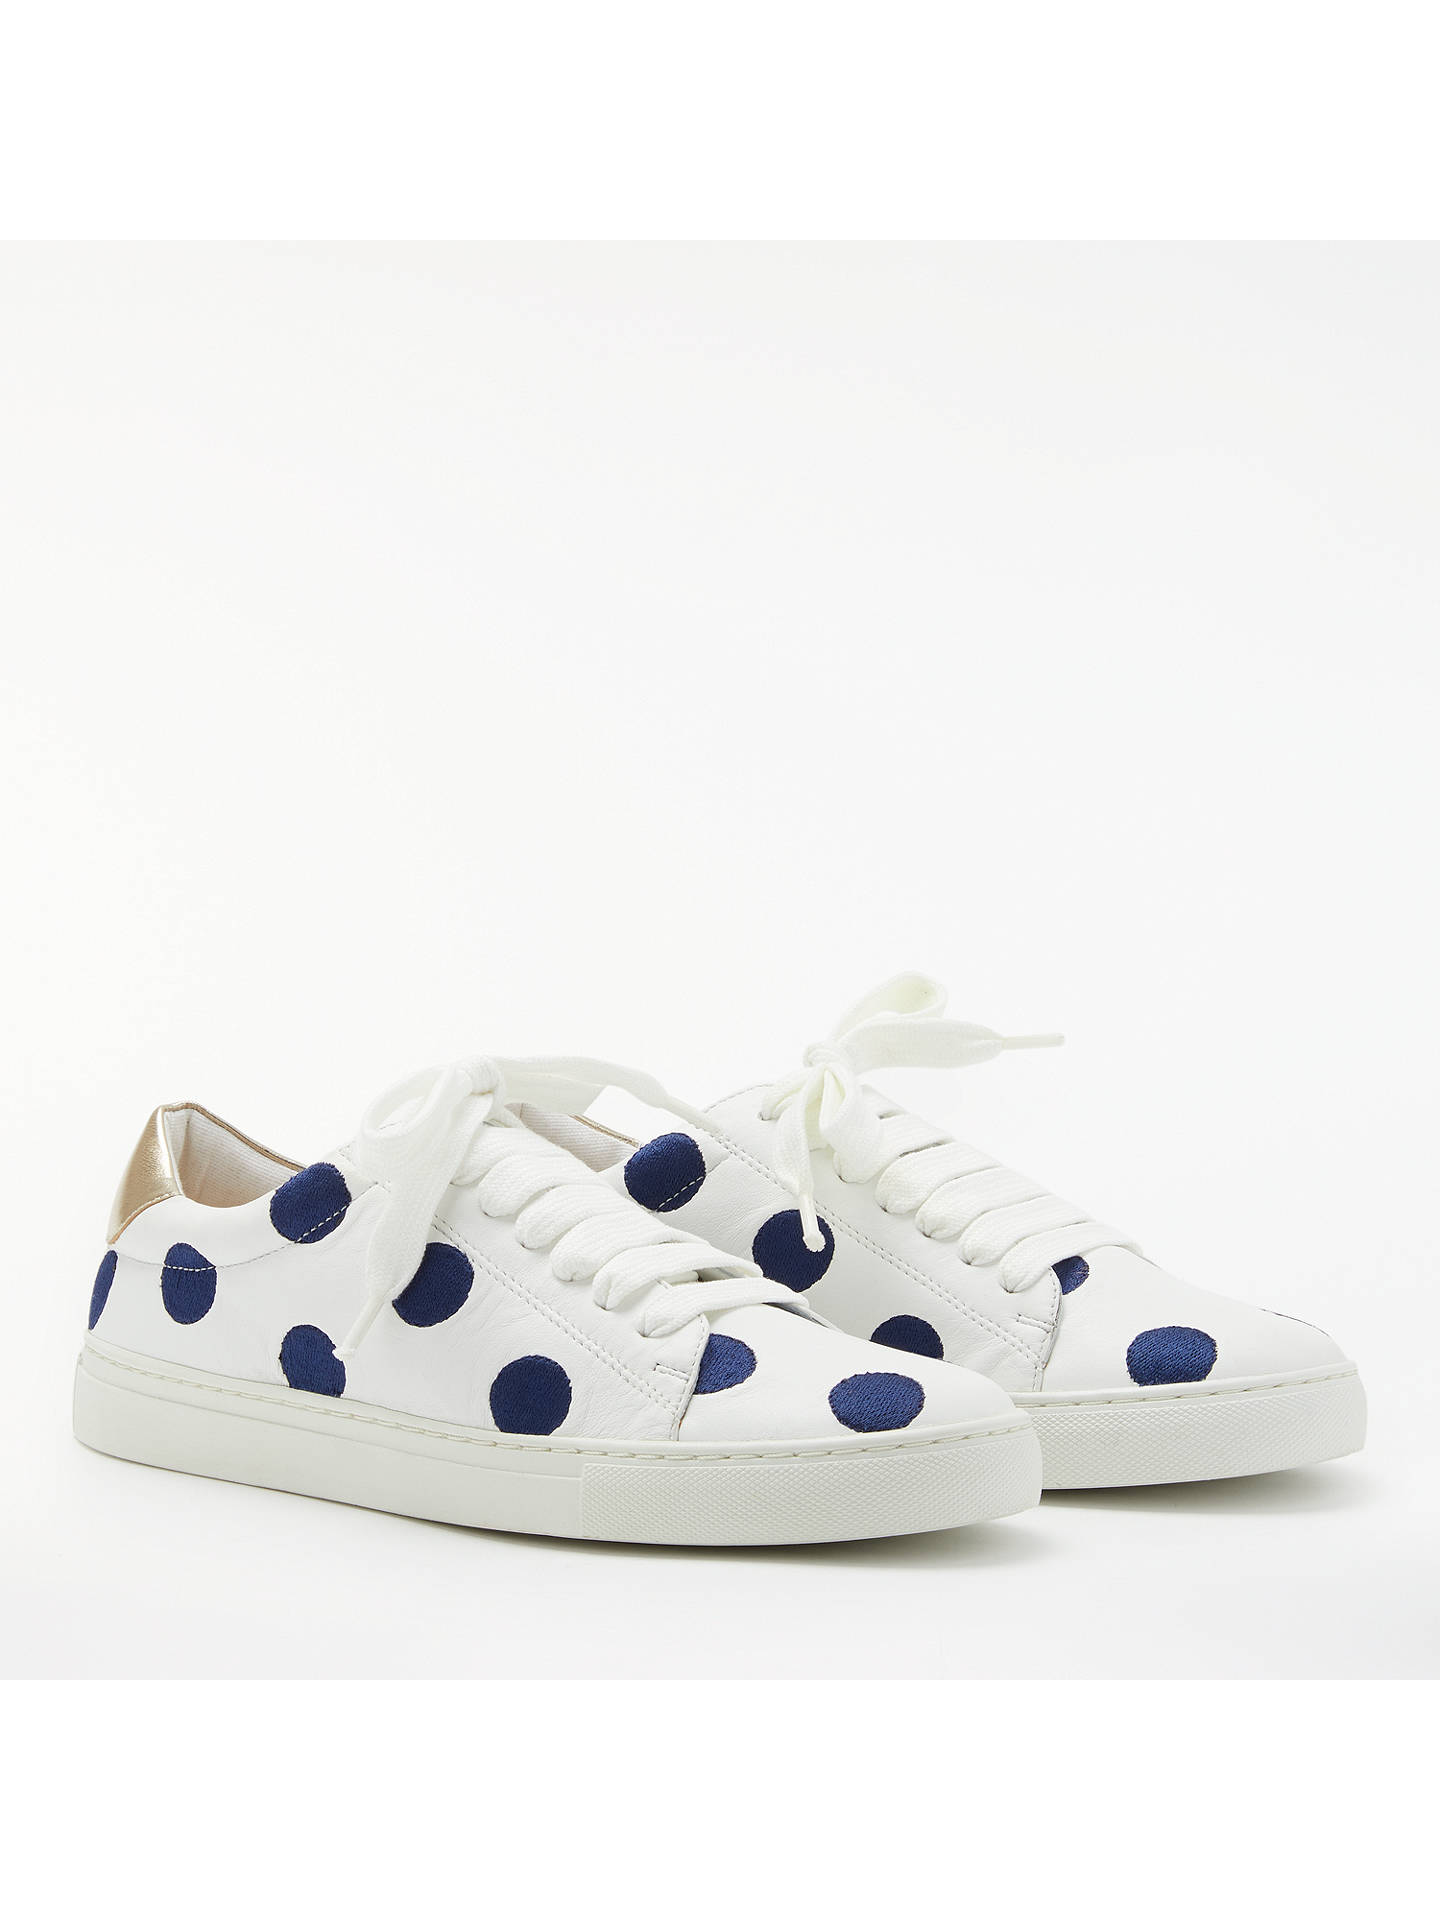 BuyBoden Hollie Lace Up Trainers, Navy/White Leather, 4 Online at johnlewis.com